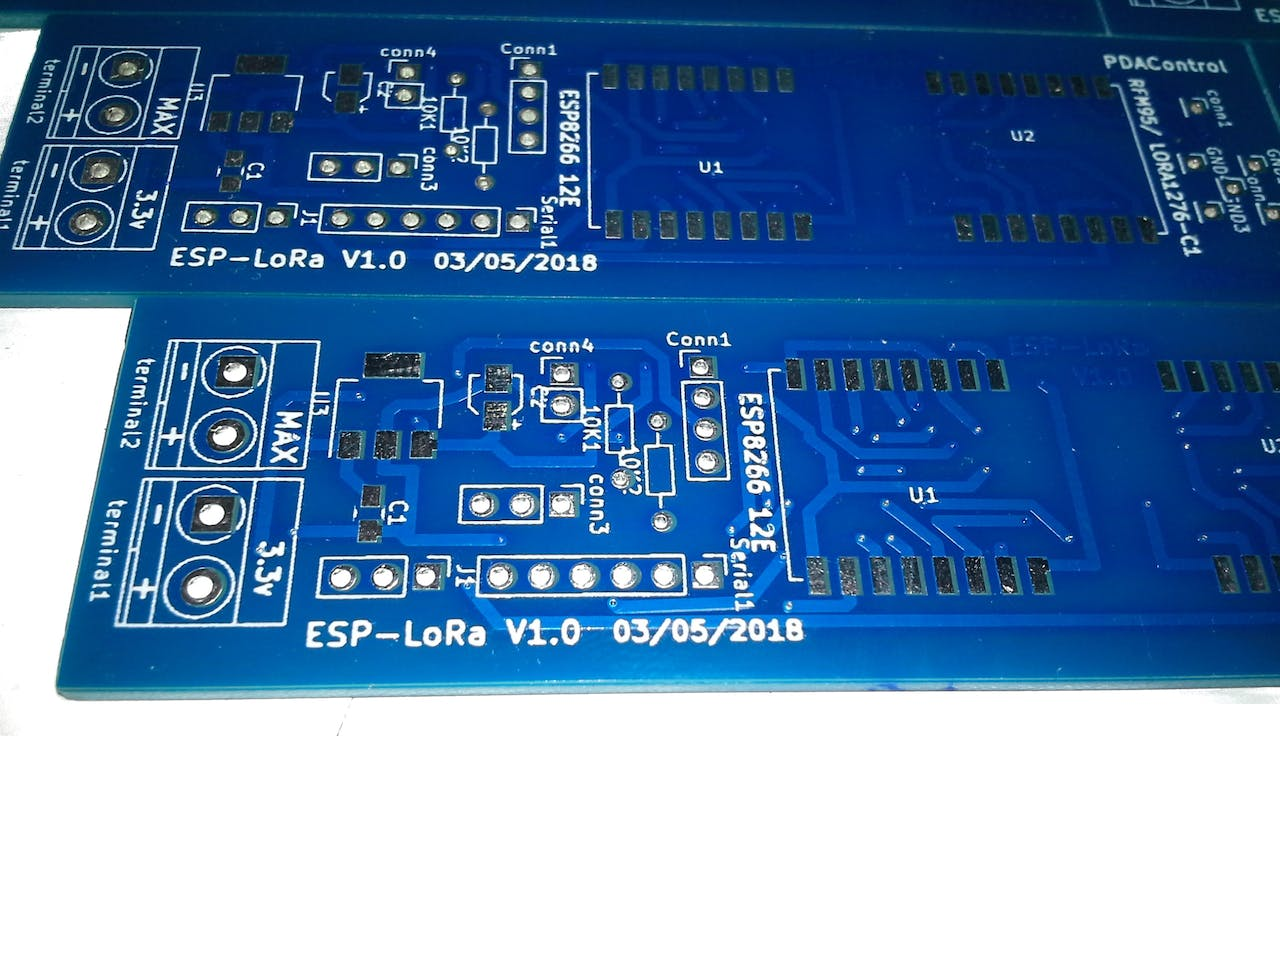 Bluetooth Pcb Circuit Module Ourpcb 10 Pcbs Professionals With Seeed Studio Fusion Esp Lora